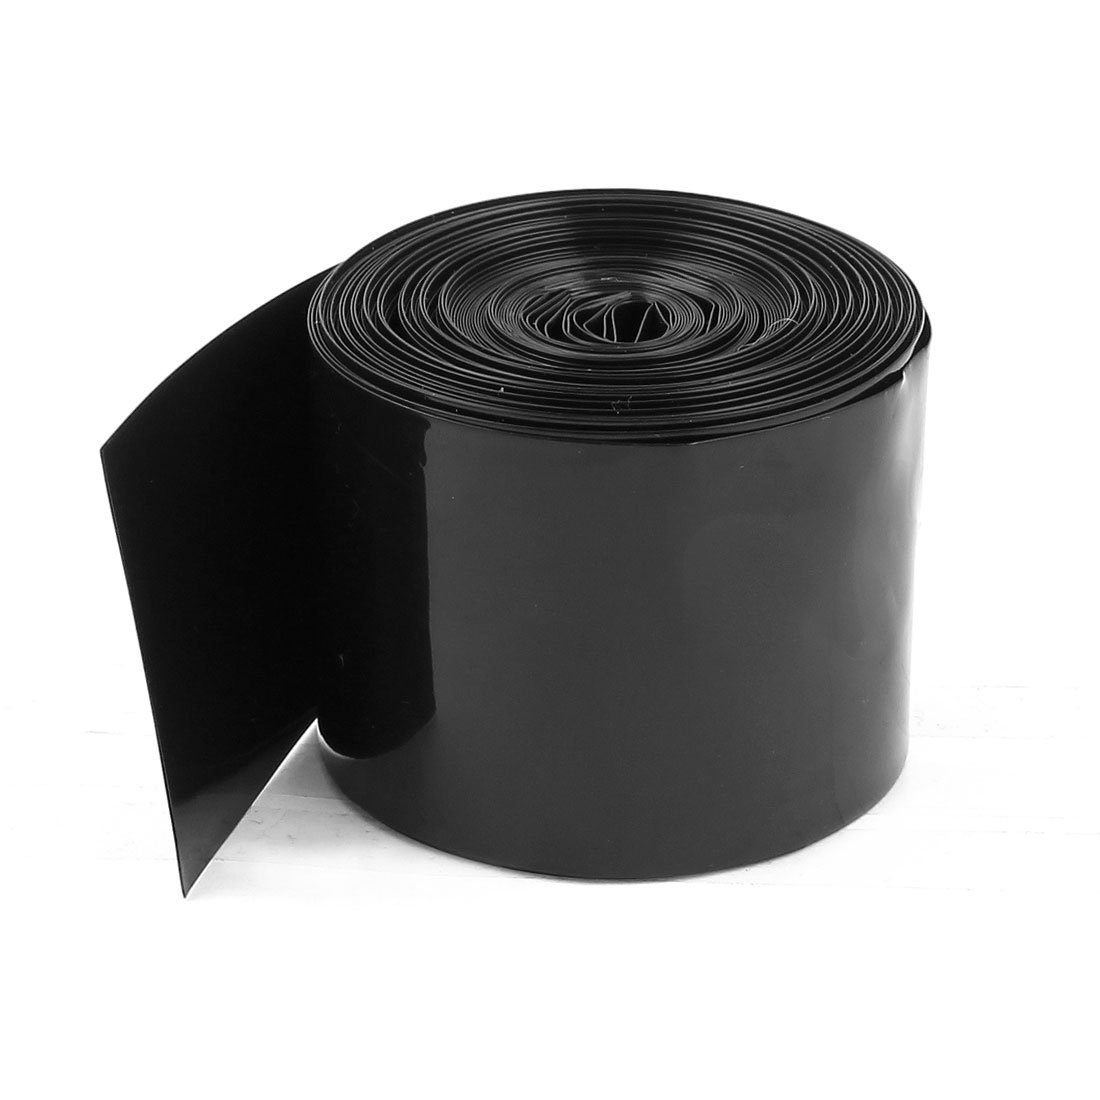 sourcingmap® 50mm/30mm PVC Heat Shrink Tubing Black 5m 16.4ft for 2 x 18650 Battery a15012900ux0419